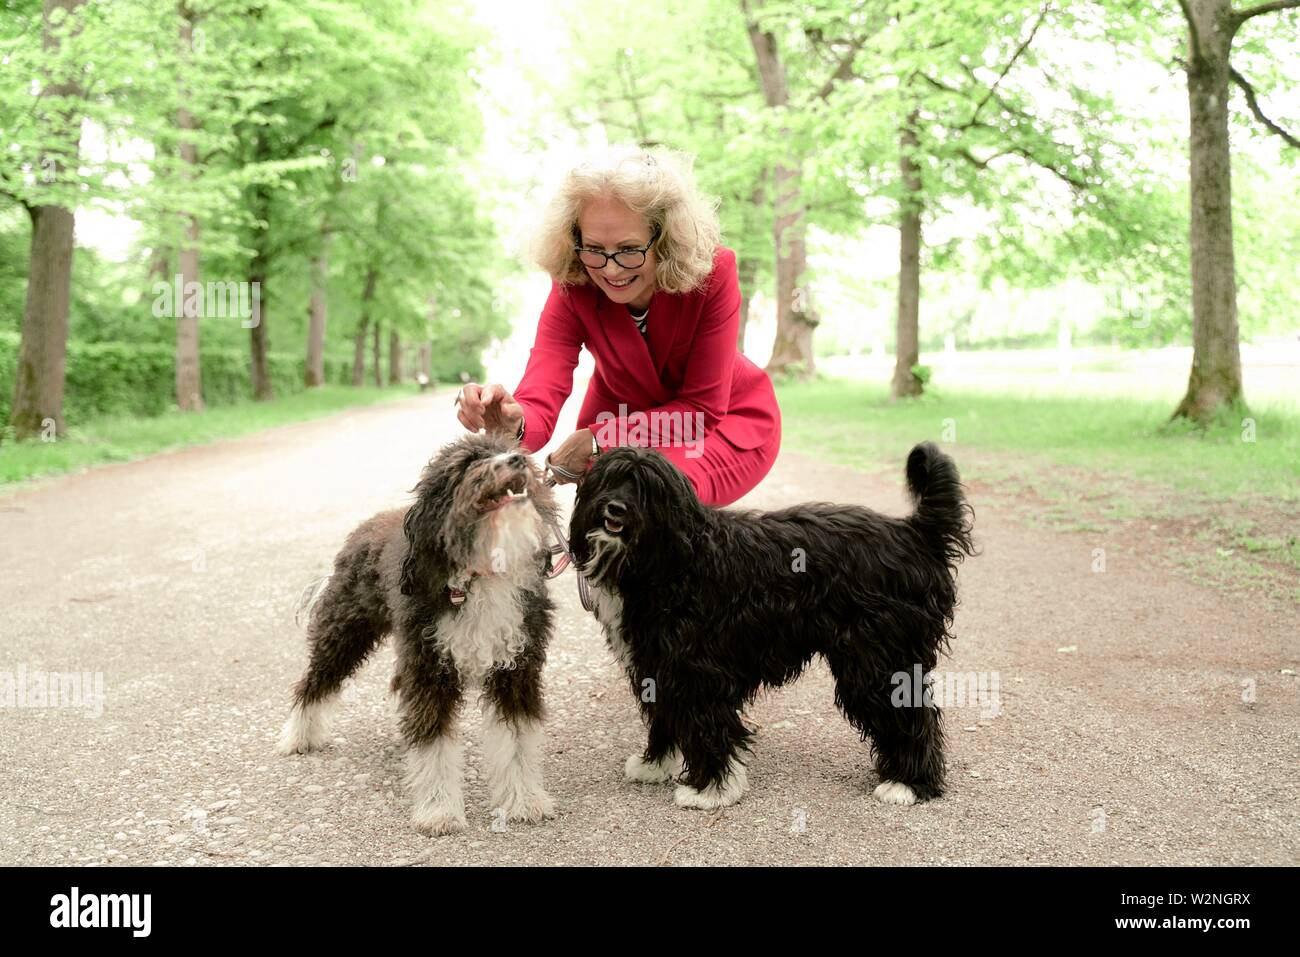 senior woman (67 years old) stroking her two dogs in park, in Nymphenburg, Munich, Germany. - Stock Image